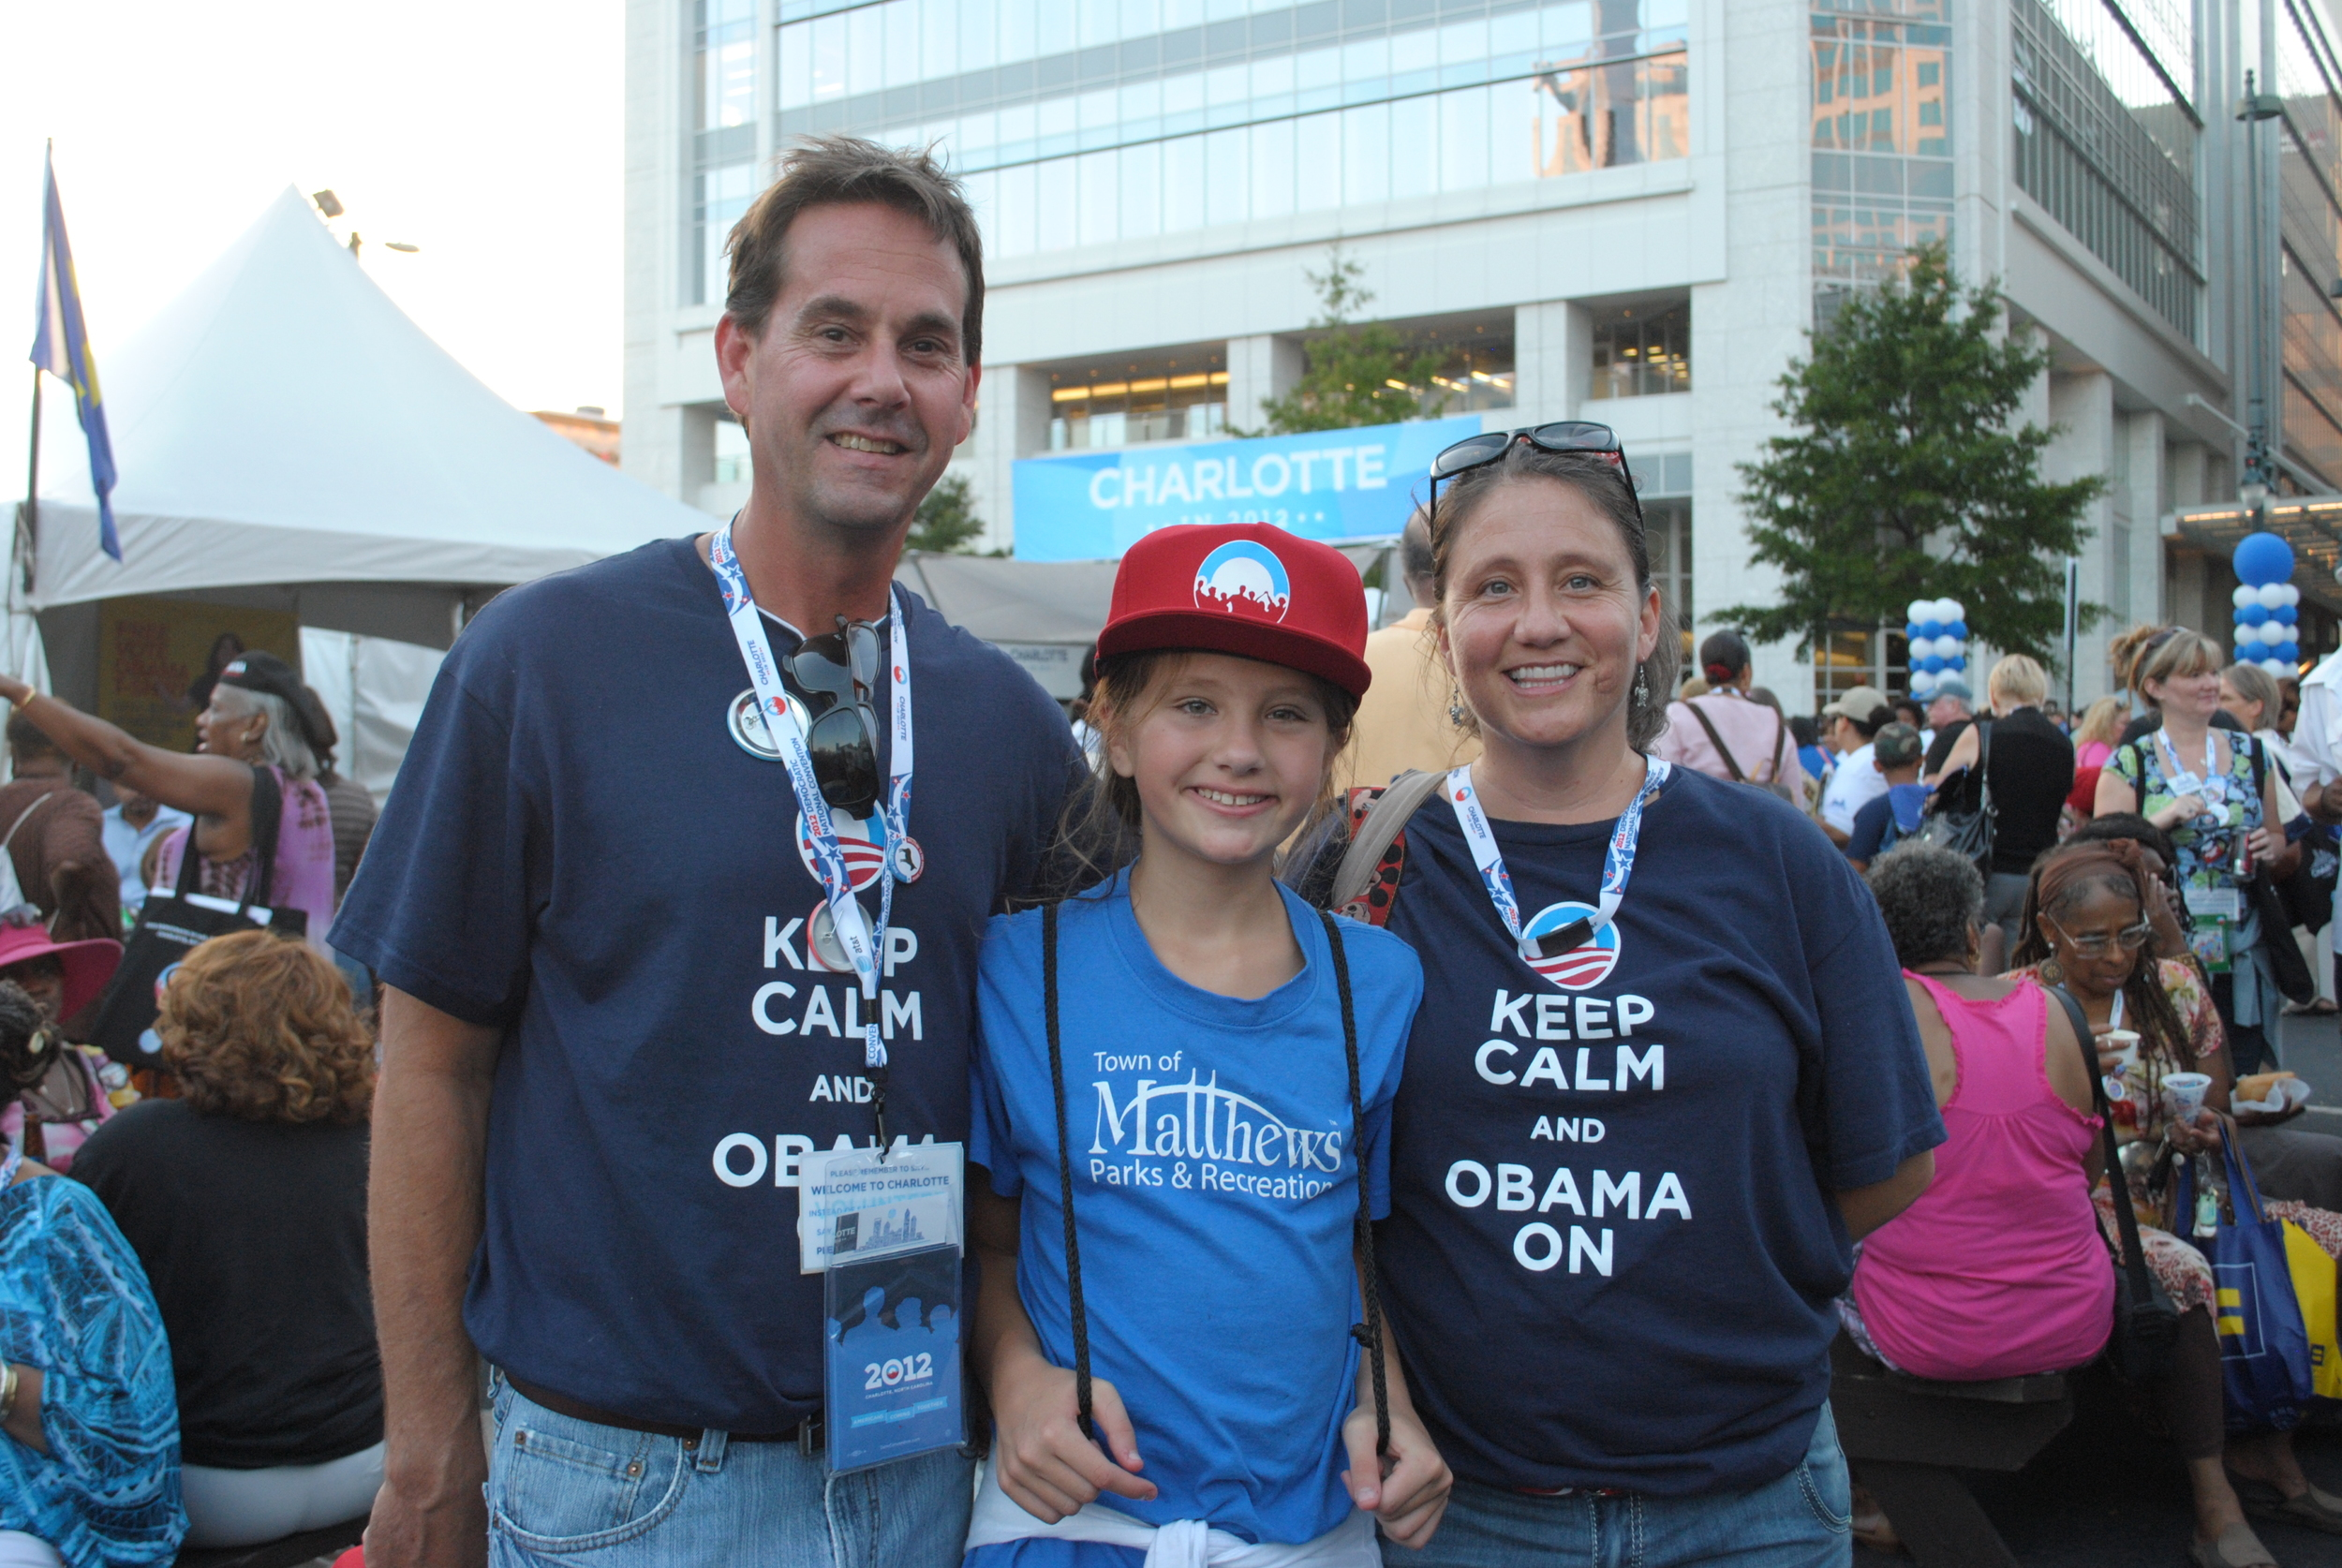 Family of Obama Supporters_Gianna.JPG